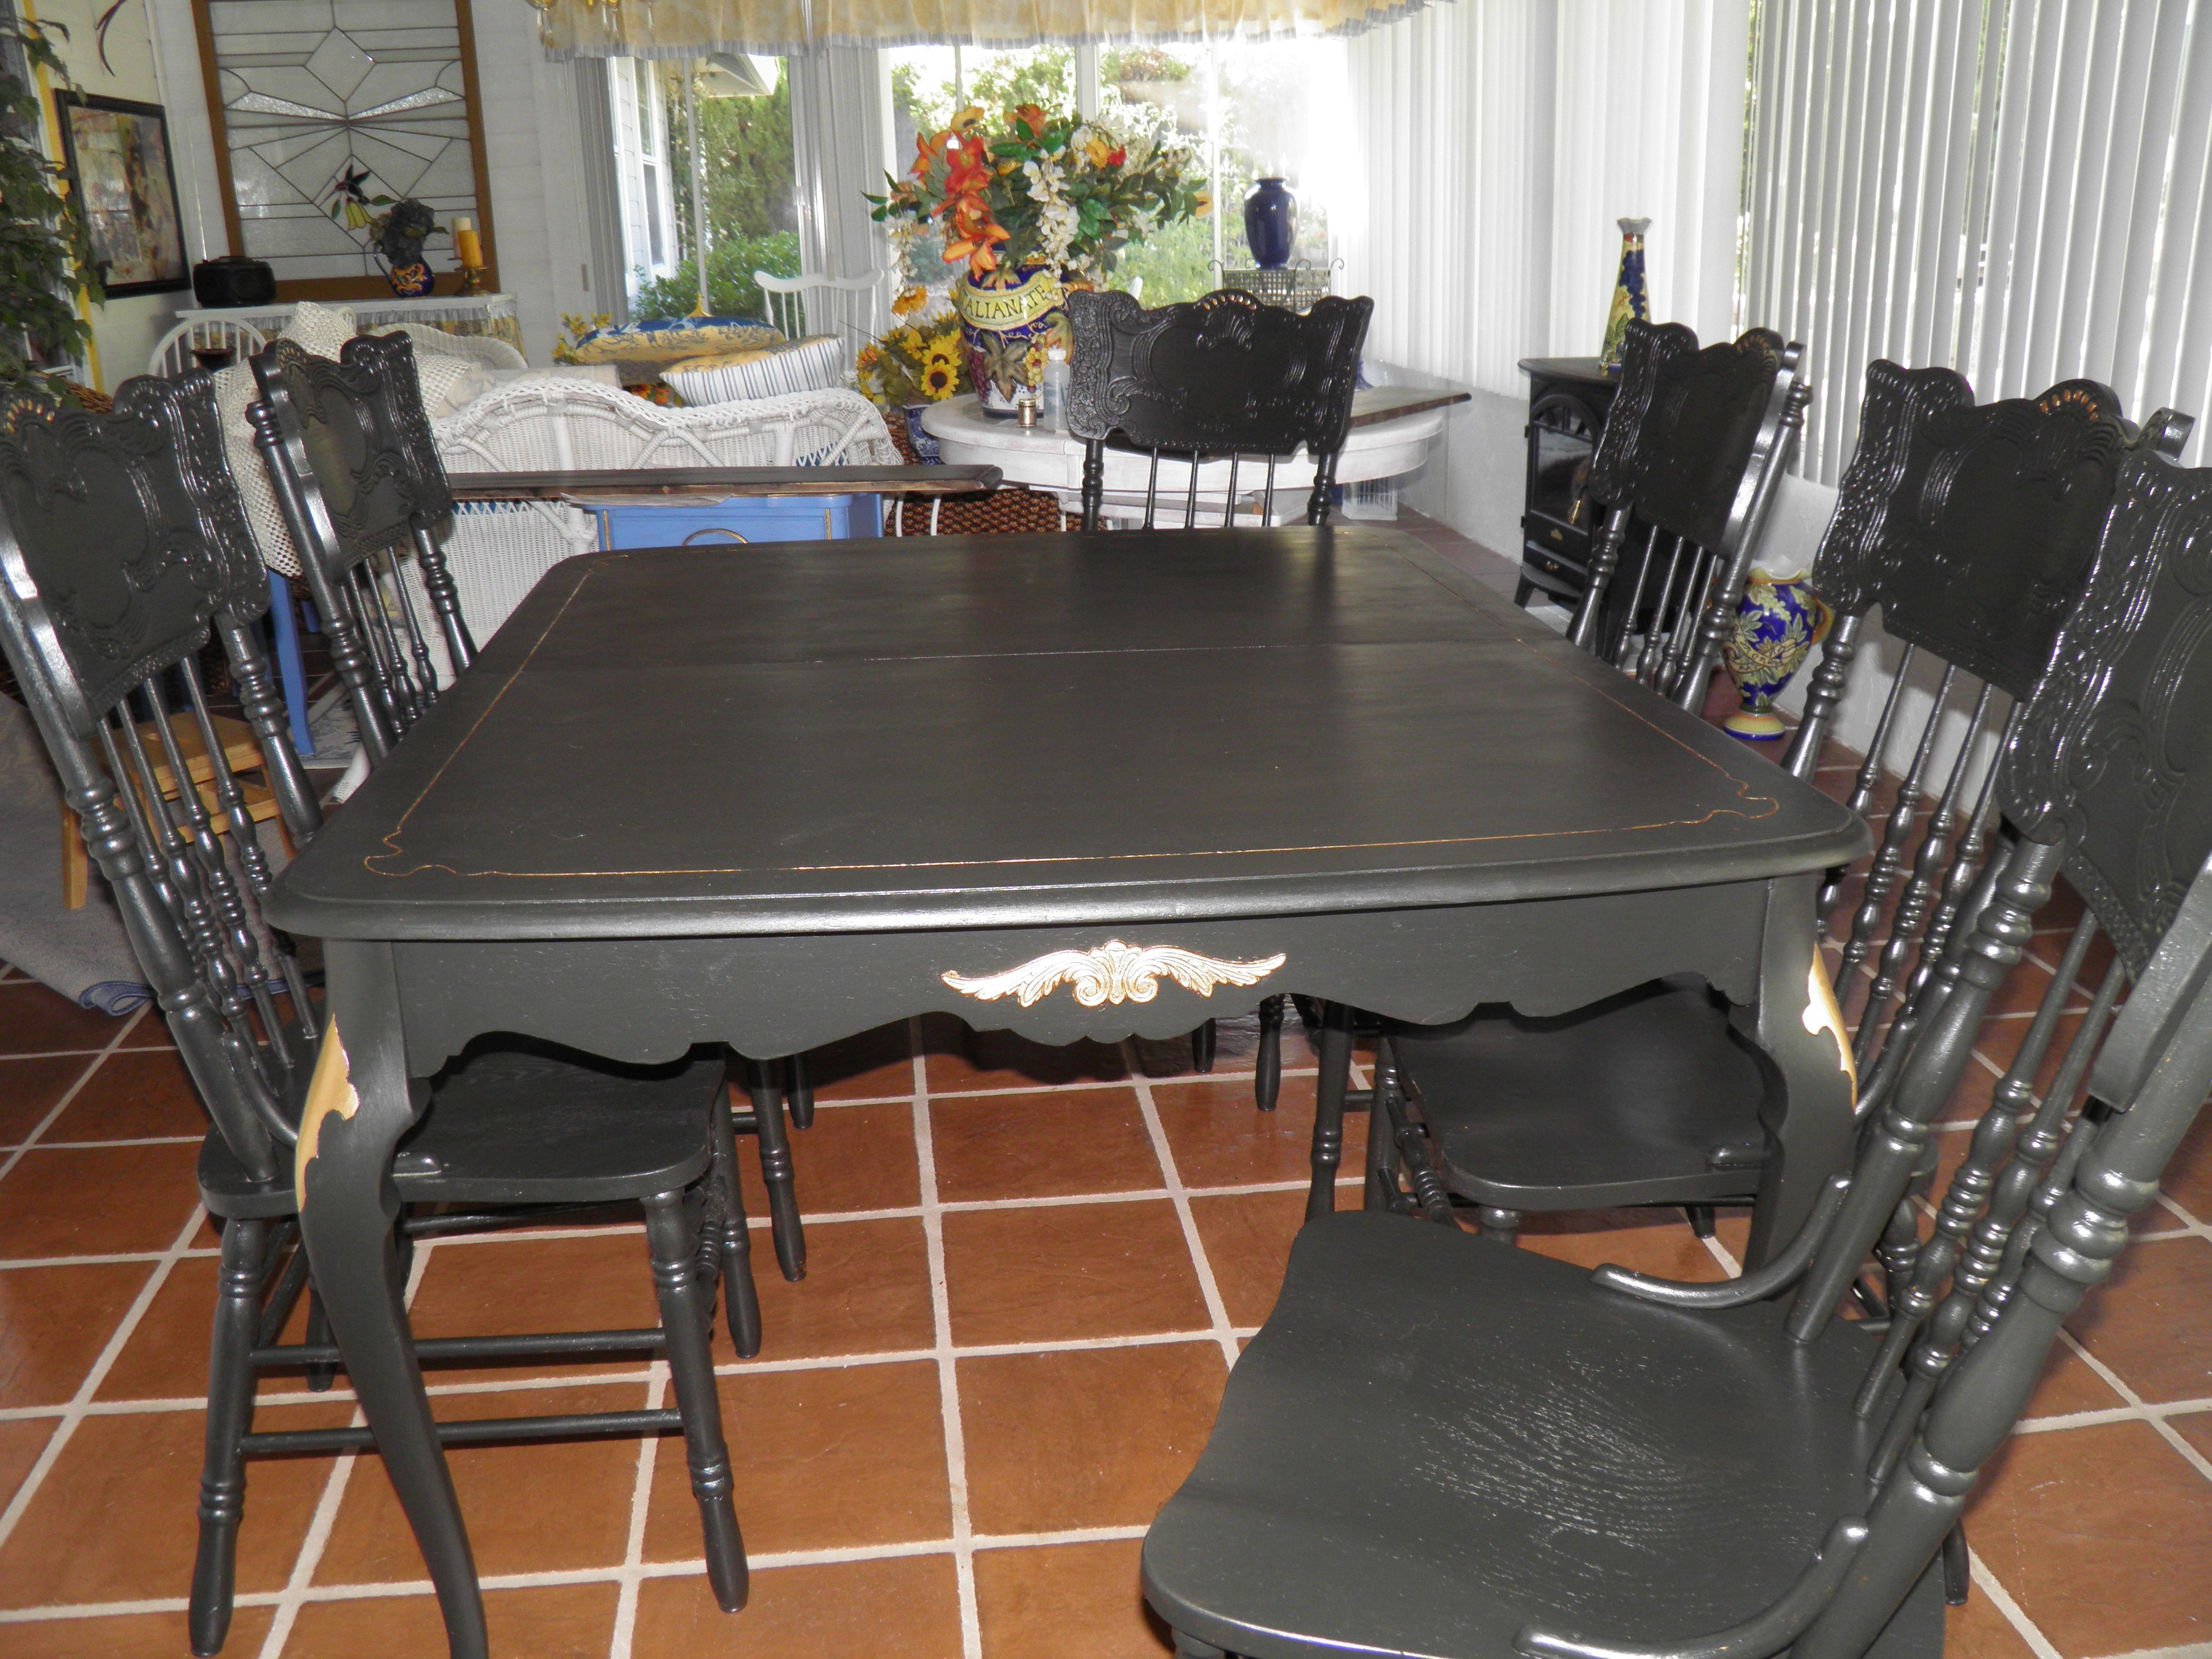 Found The Dining Room Table On Craigslist And The 6 Chairs At A Garage Sale Painted Everything And Sold It Dining Room Table Repurposed Furniture Room